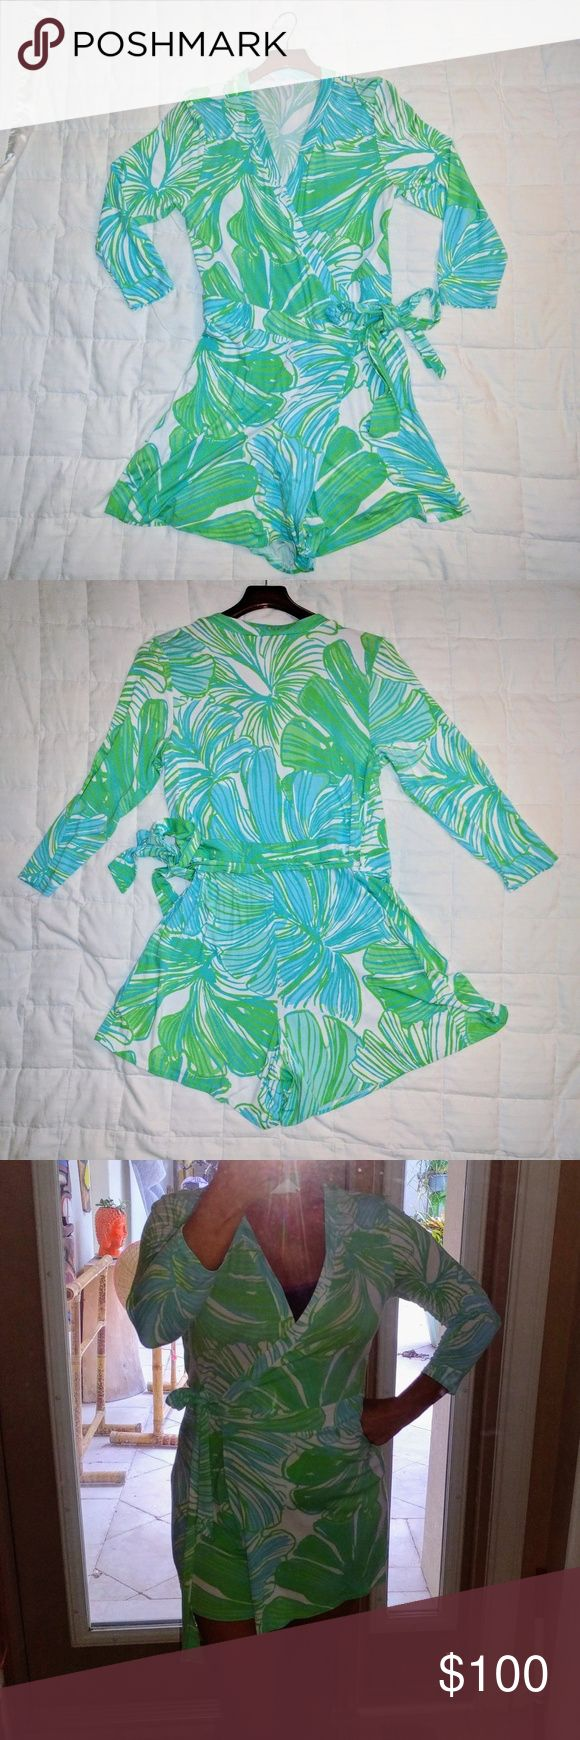 """Lilly Pulitzer Karlie Wrap Romper Sz Large Lilly Pulitzer Karlie Wrap Romper in Fronds Place. I never even wore it, took off the tags, handwashed it and it's been sitting in my closet. This romper is a light weight spandex jersey that is so flattering. Check out Lilly Pulitzer's website for reviews. 4.7 out of 5 hearts. Seriously well liked! 5"""" inseam. Lilly Pulitzer Dresses"""